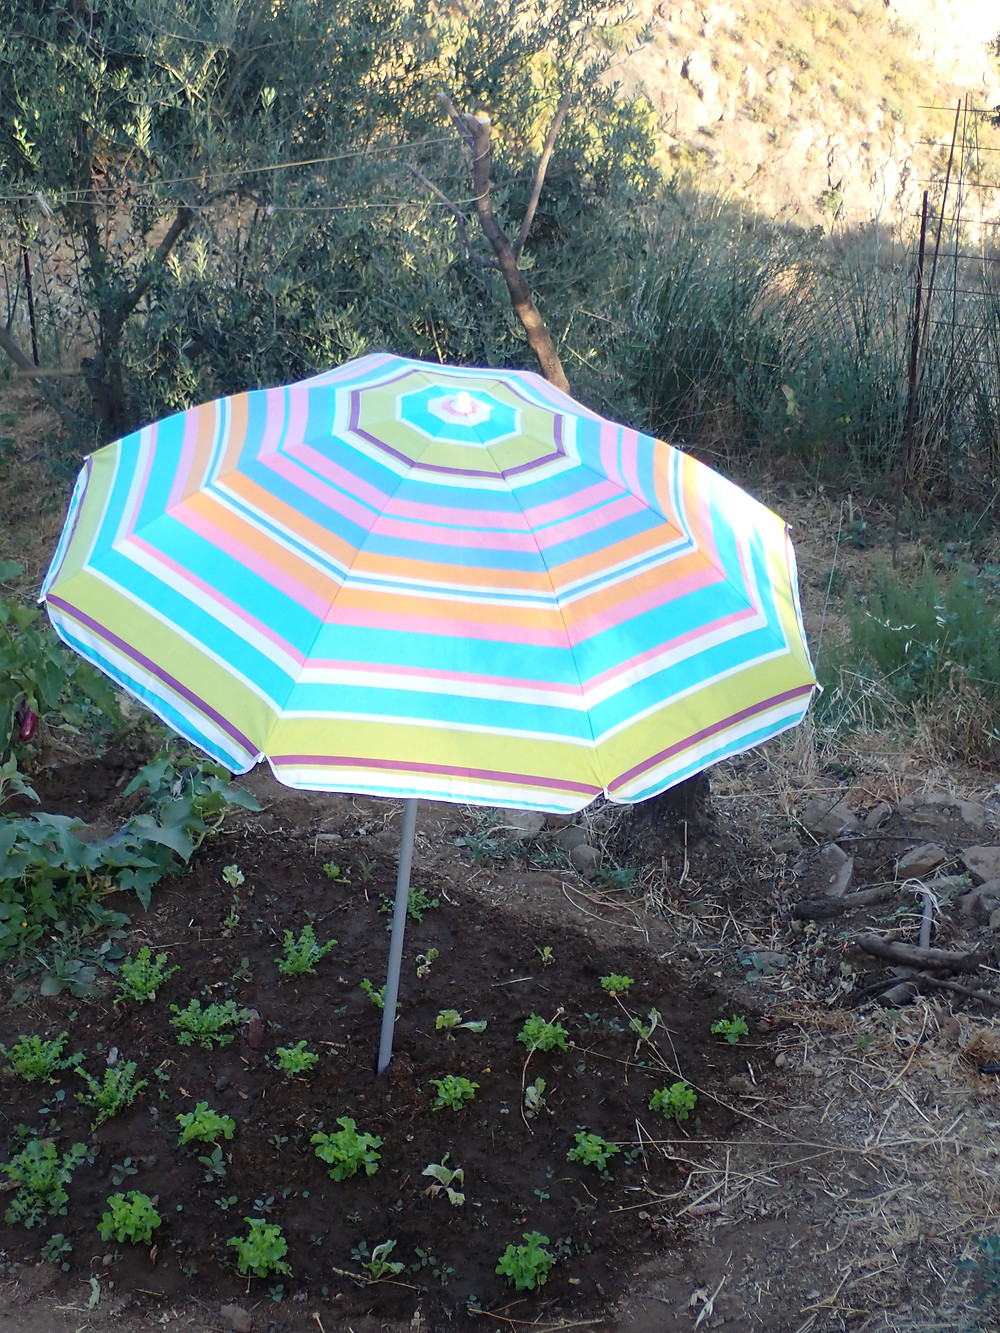 Some lettuces growing, shielded from the sun with an umbrella